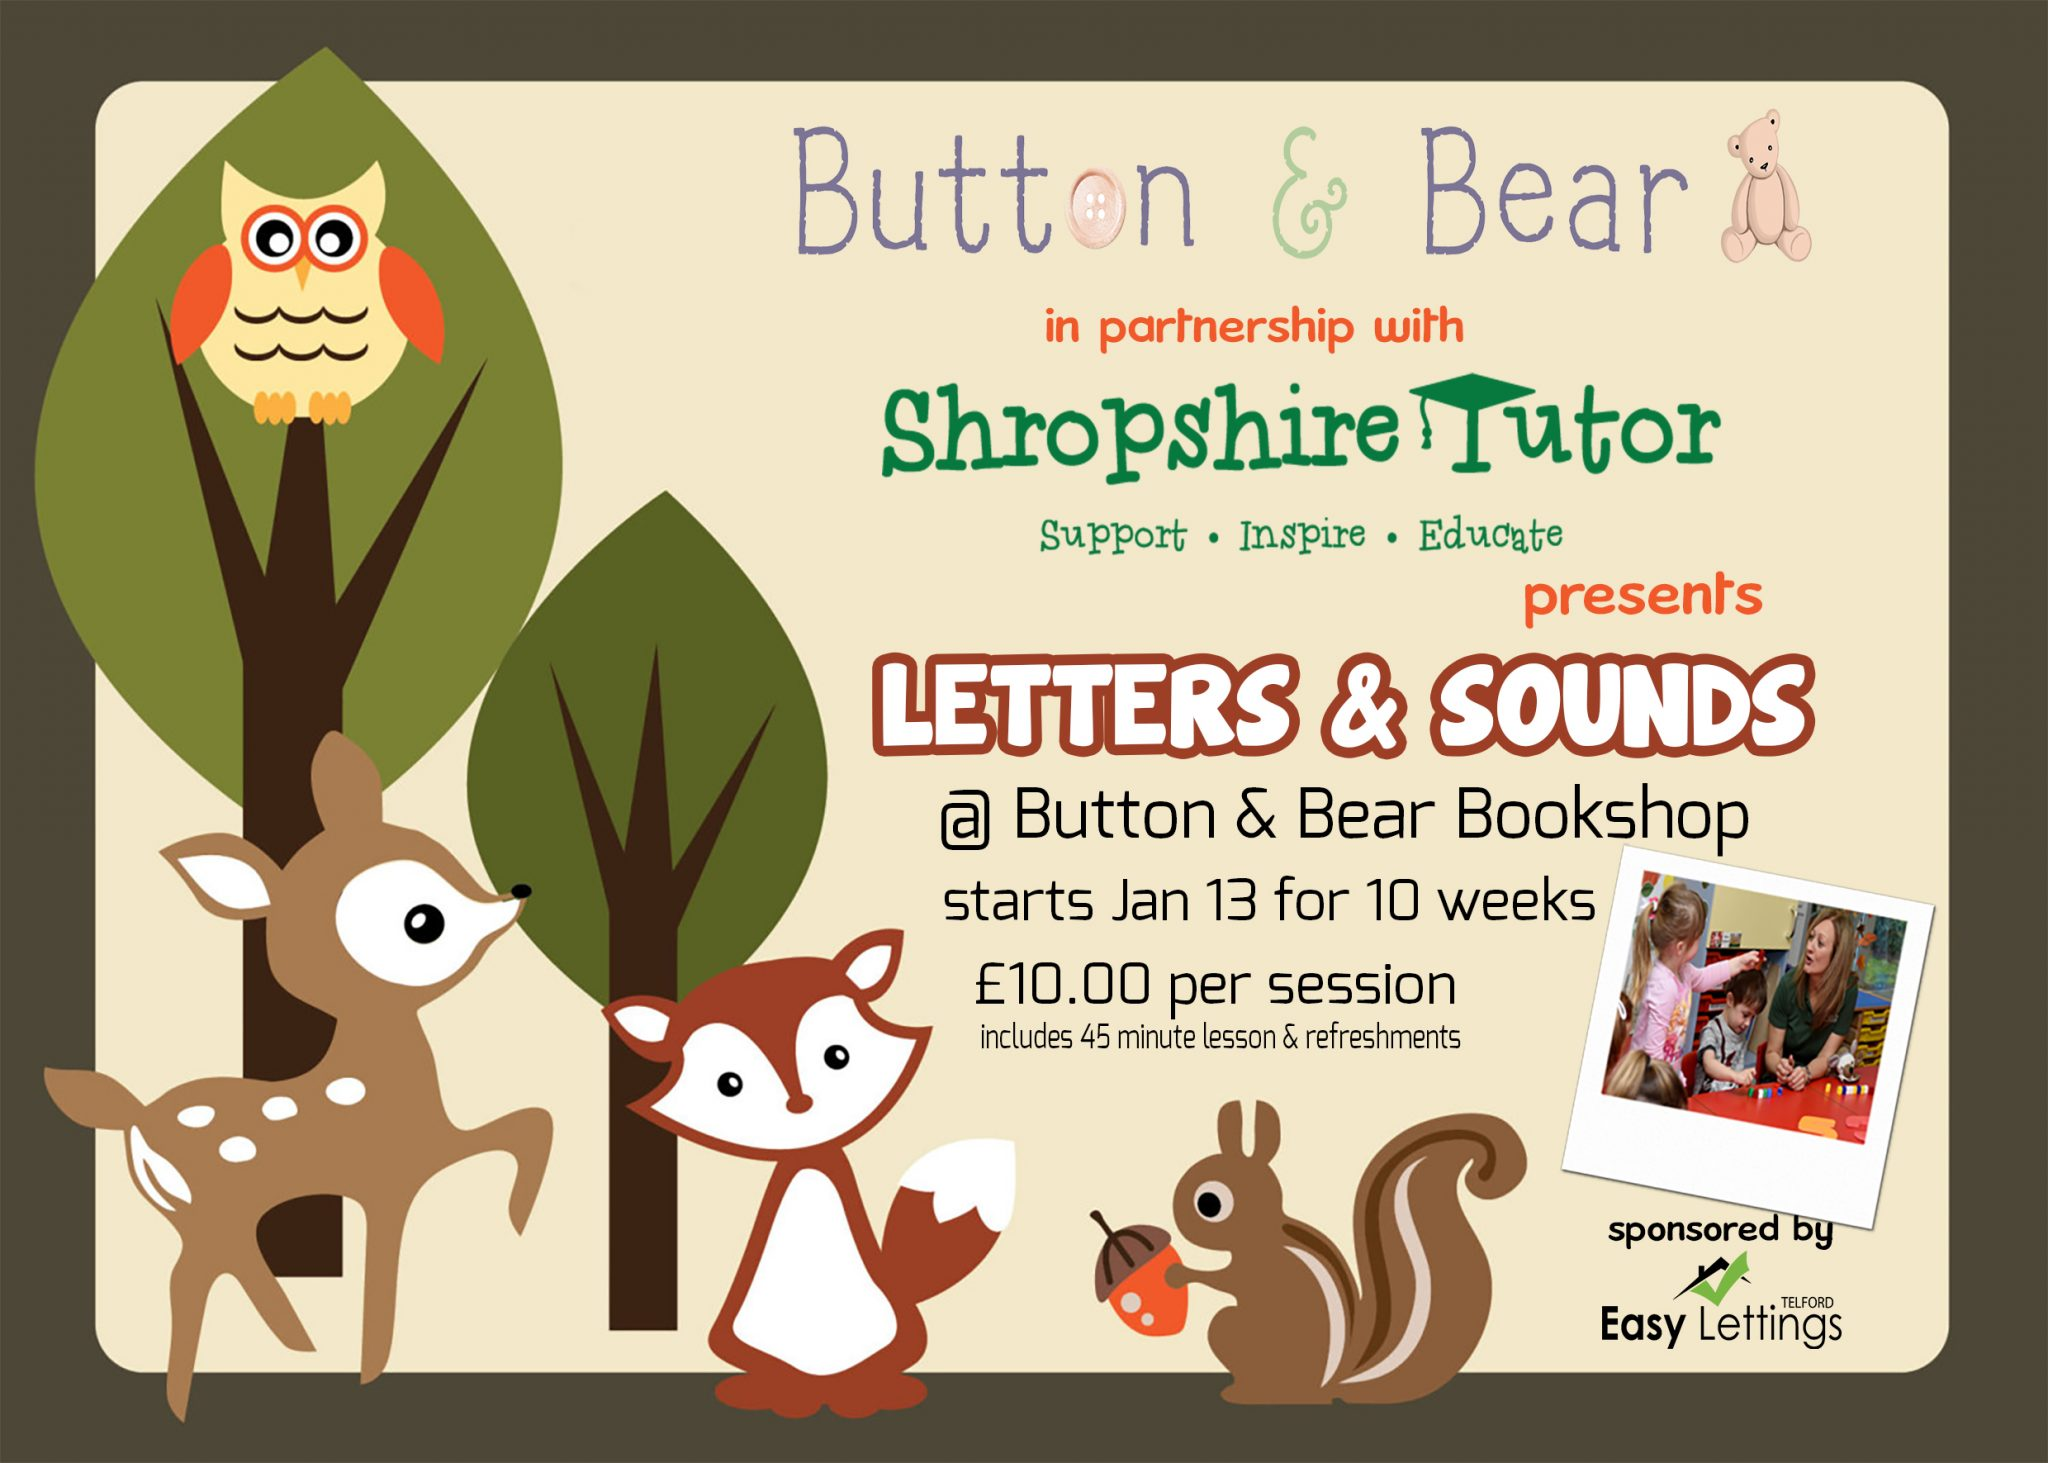 Working in partnership with Button & Bear Bookshop in Shrewsbury